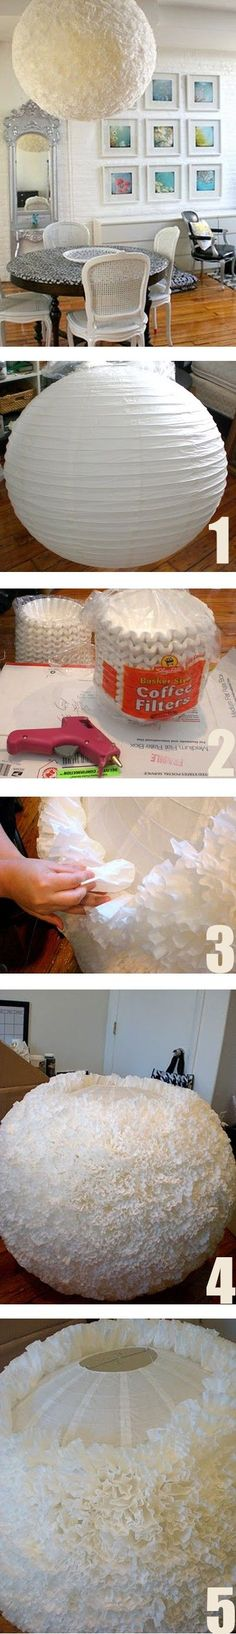 DIY Coffee Filter Lamp diy lighting craft crafts home decor easy crafts diy ideas diy crafts crafty lamp diy decor craft decorations how to home crafts tutorials teen crafts Diy Home Crafts, Diy Home Decor, Teen Crafts, Coffee Filter Crafts, Coffee Filters, Deco Luminaire, Creation Deco, Diy Furniture, Projects To Try